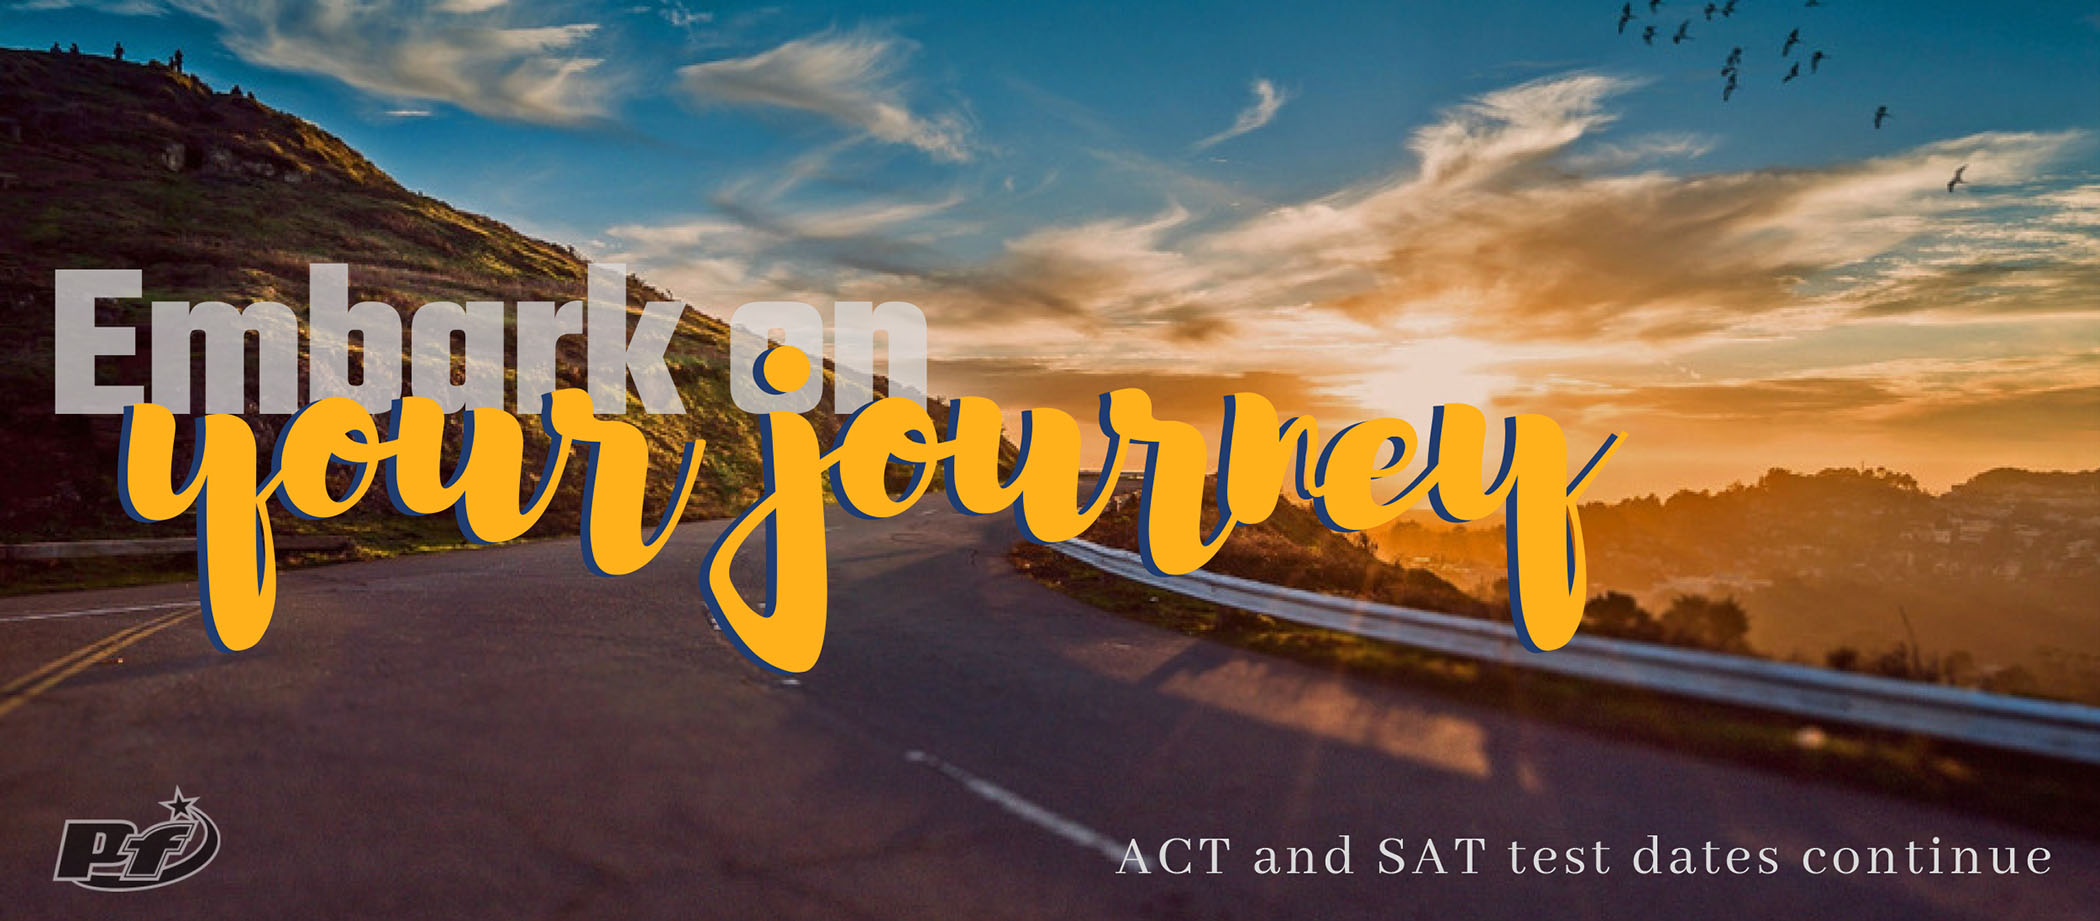 ACT & SAT tests